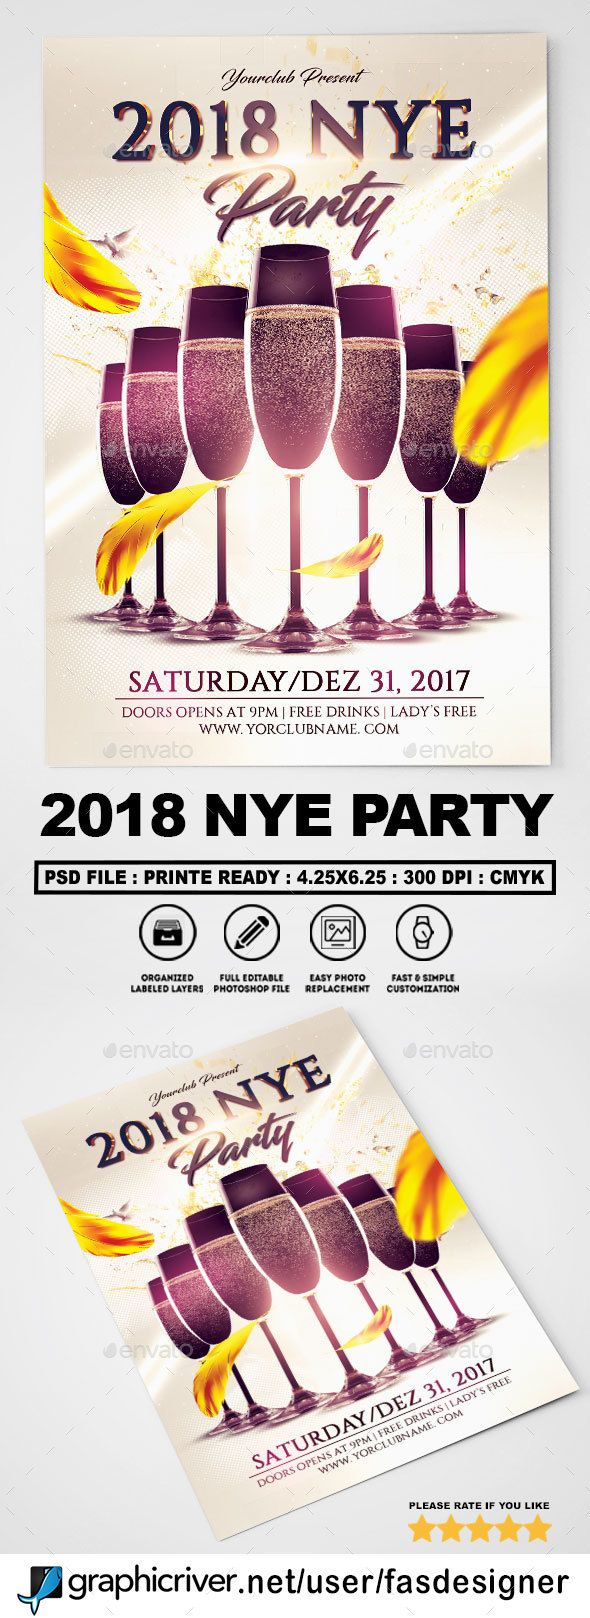 2018 NYE Party Flyer Template #classy #party  • Download here → https://graphicriver.net/item/2018-nye-party-flyer-template/20791153?ref=pxcr